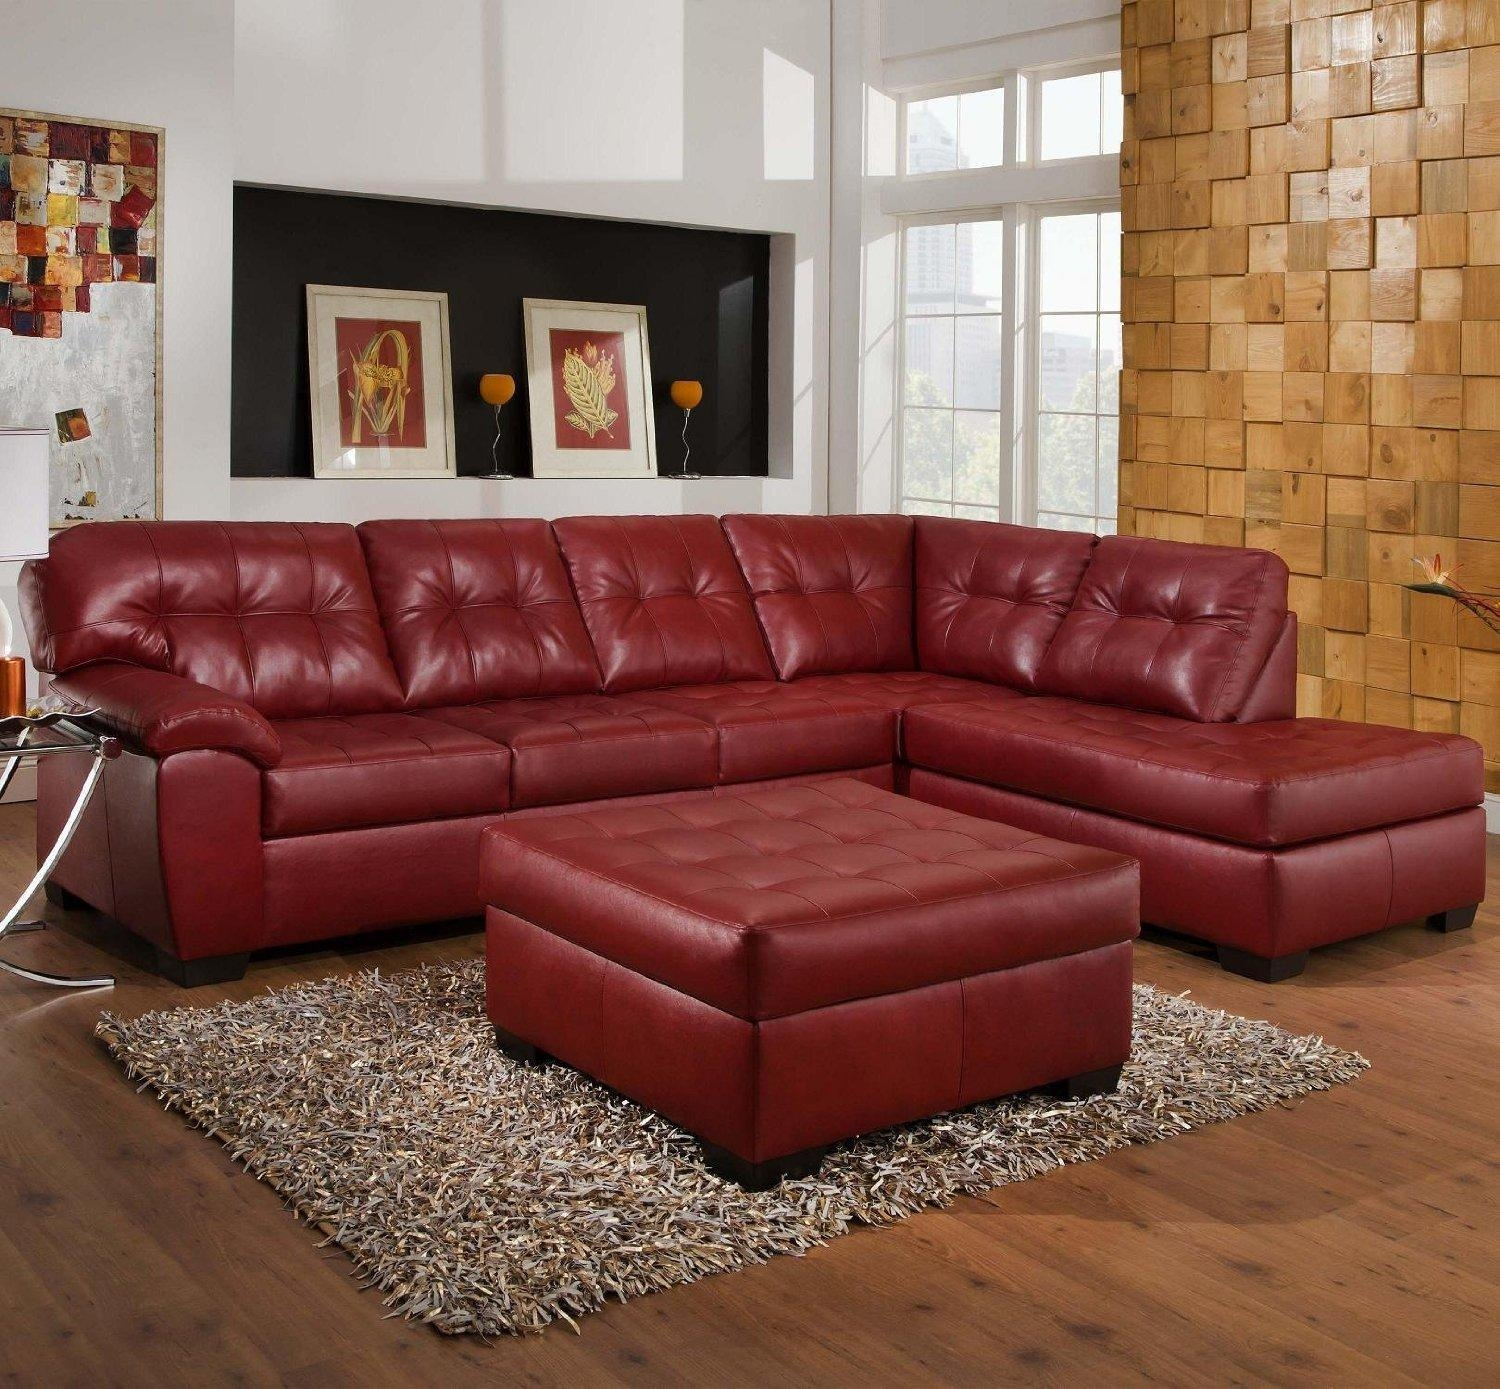 Red Leather Couches Decor : Stylish Red Leather Couches – Home Inside Dark  Red Leather Sofas